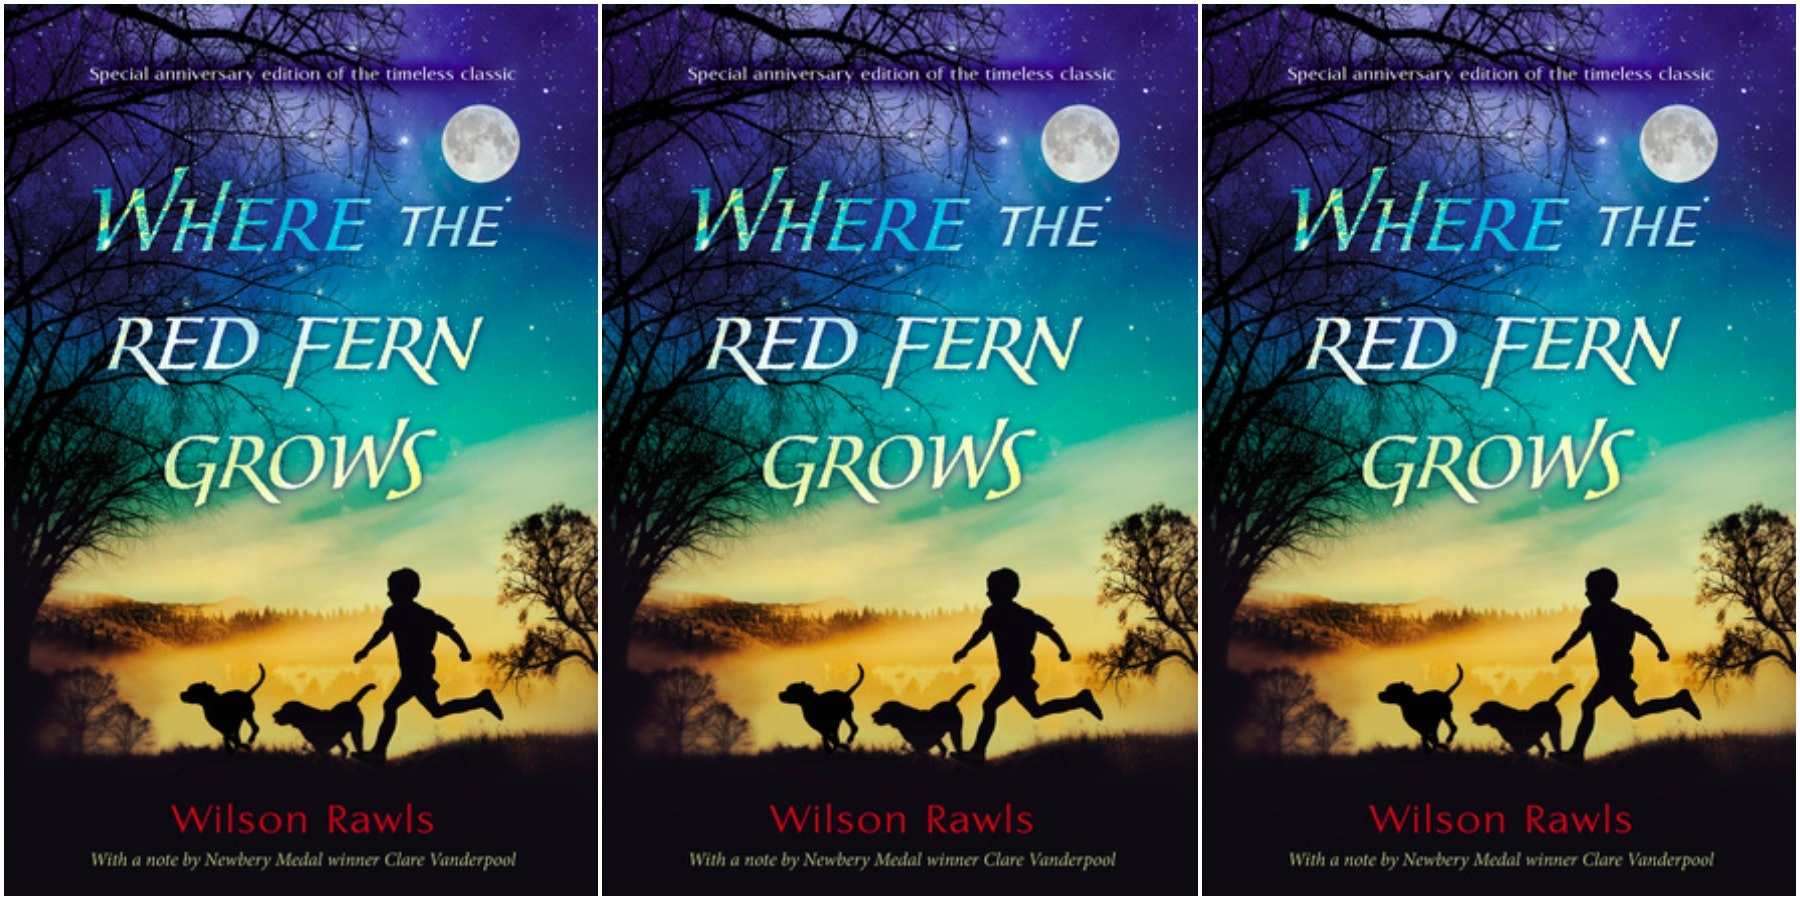 book report over where the red fern grows